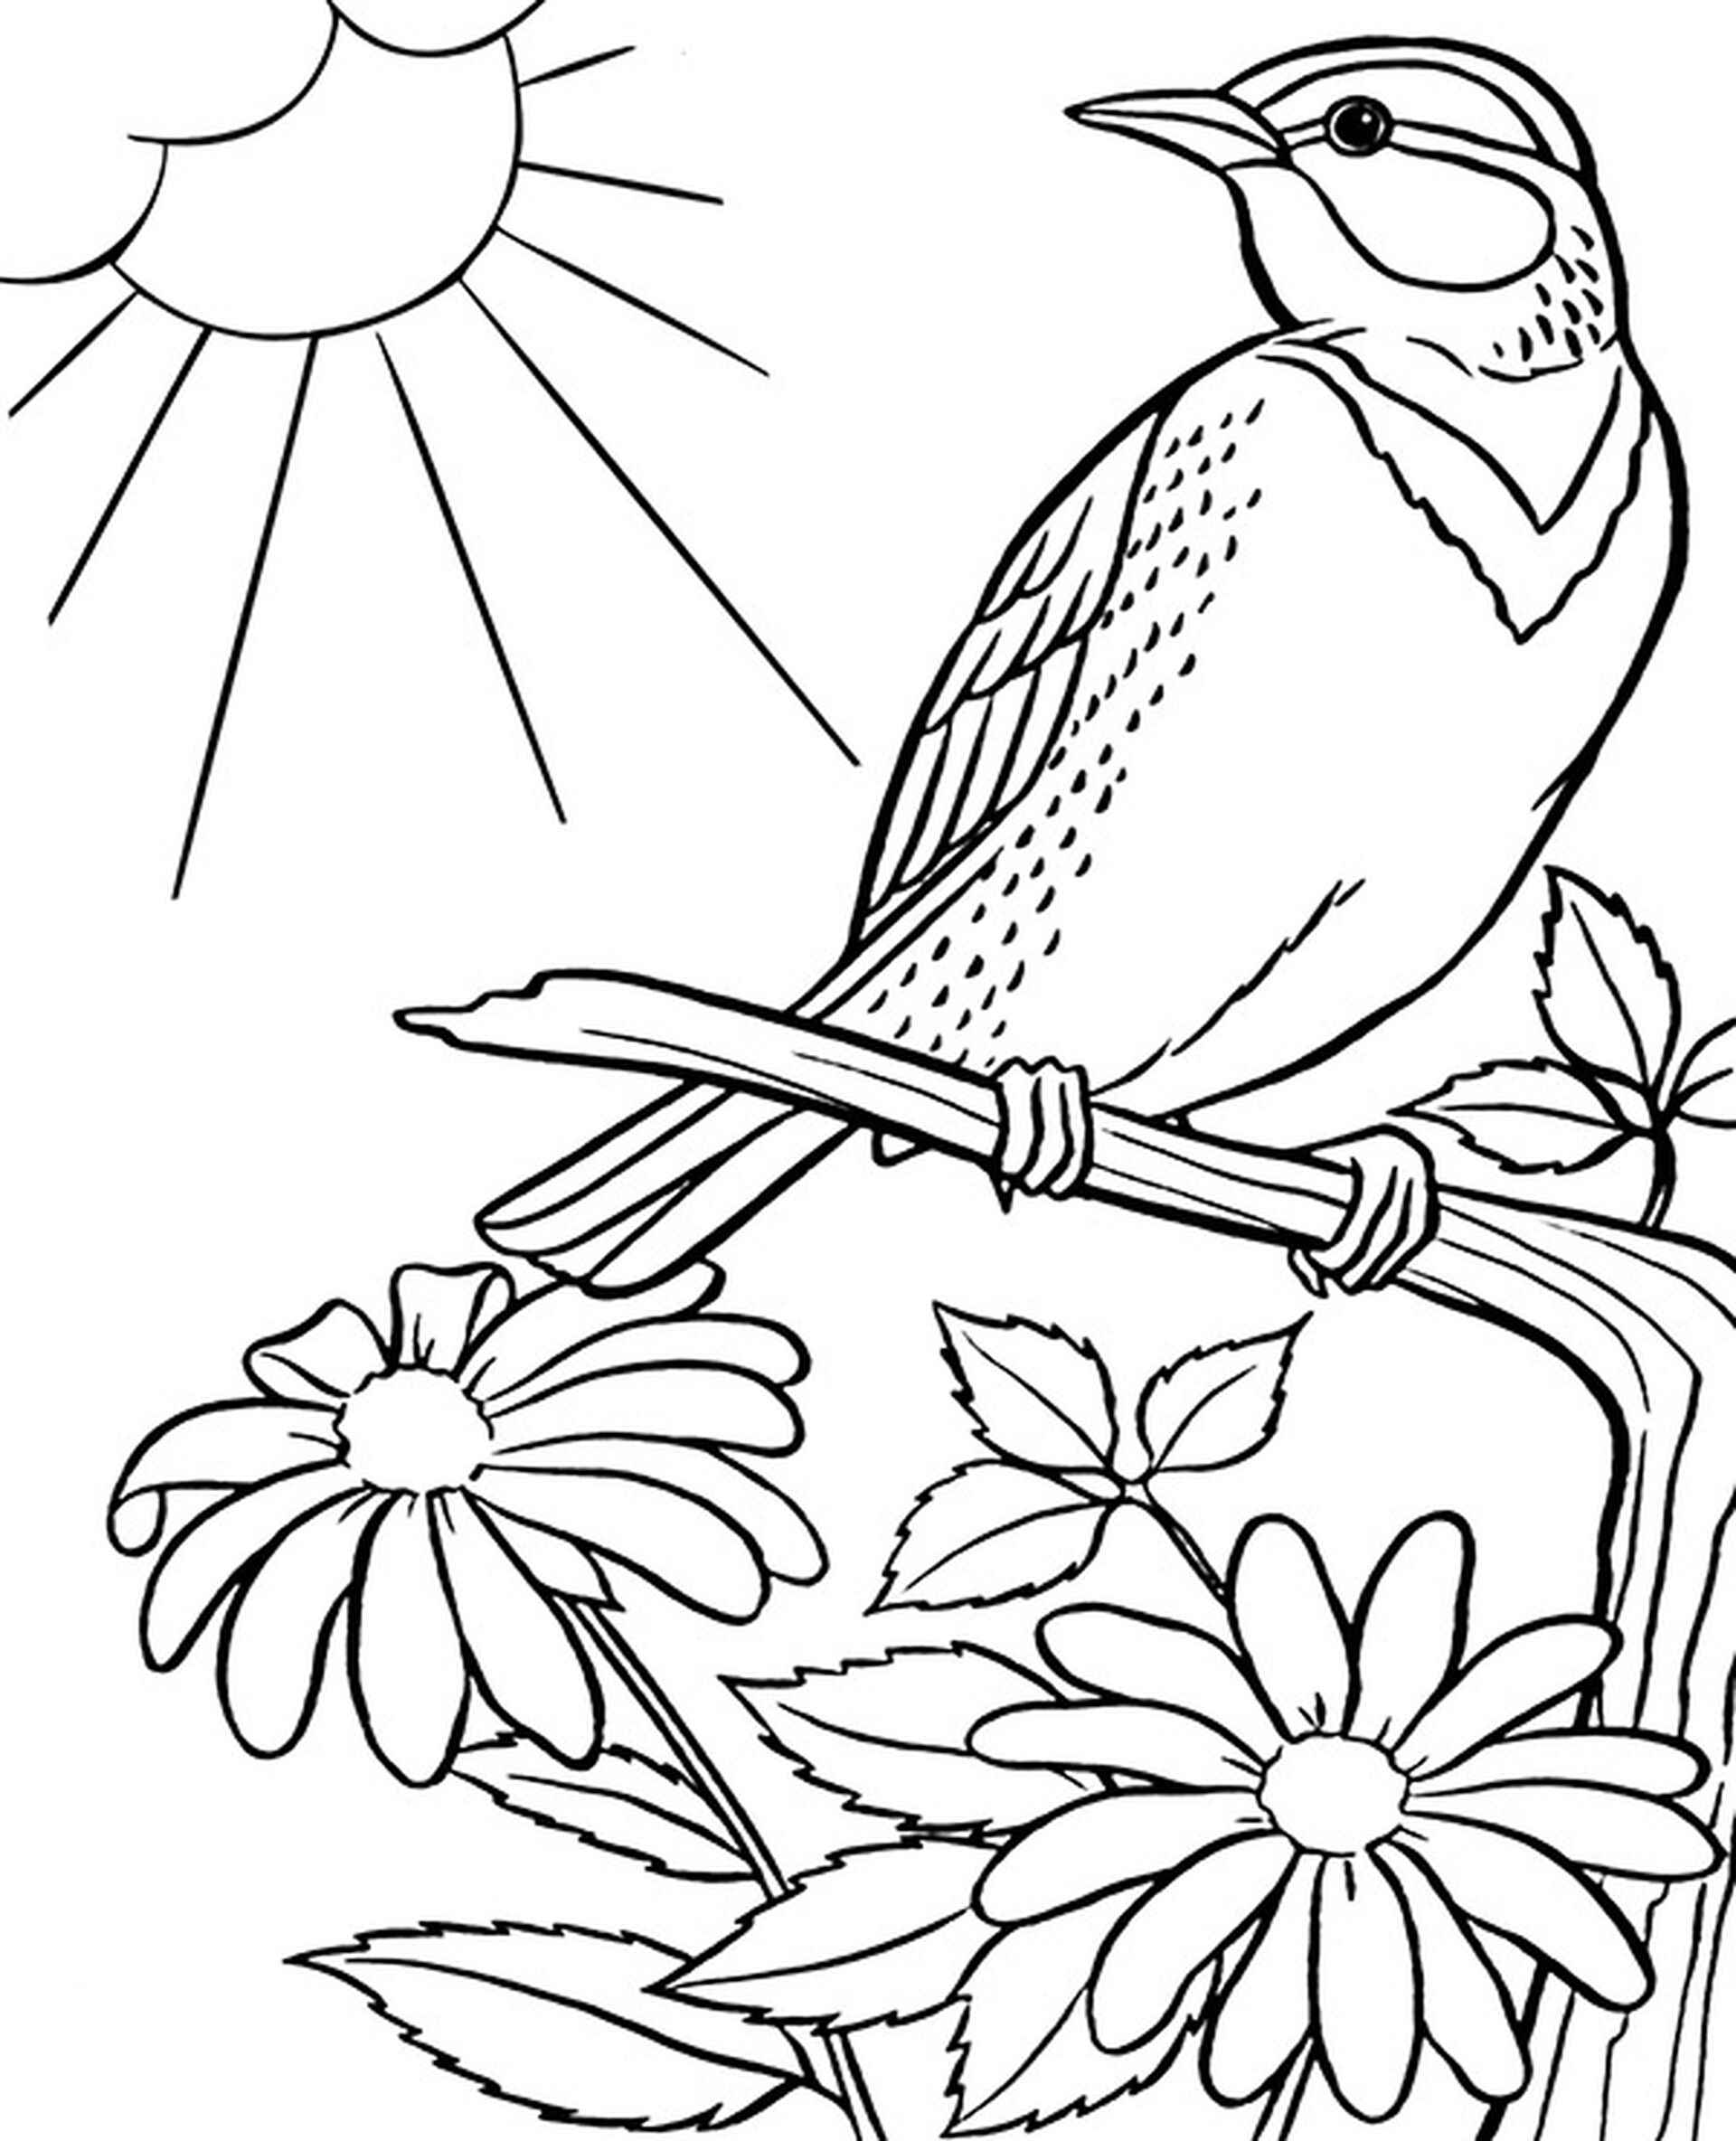 Chipping Sparrow In The Sun Coloring Page